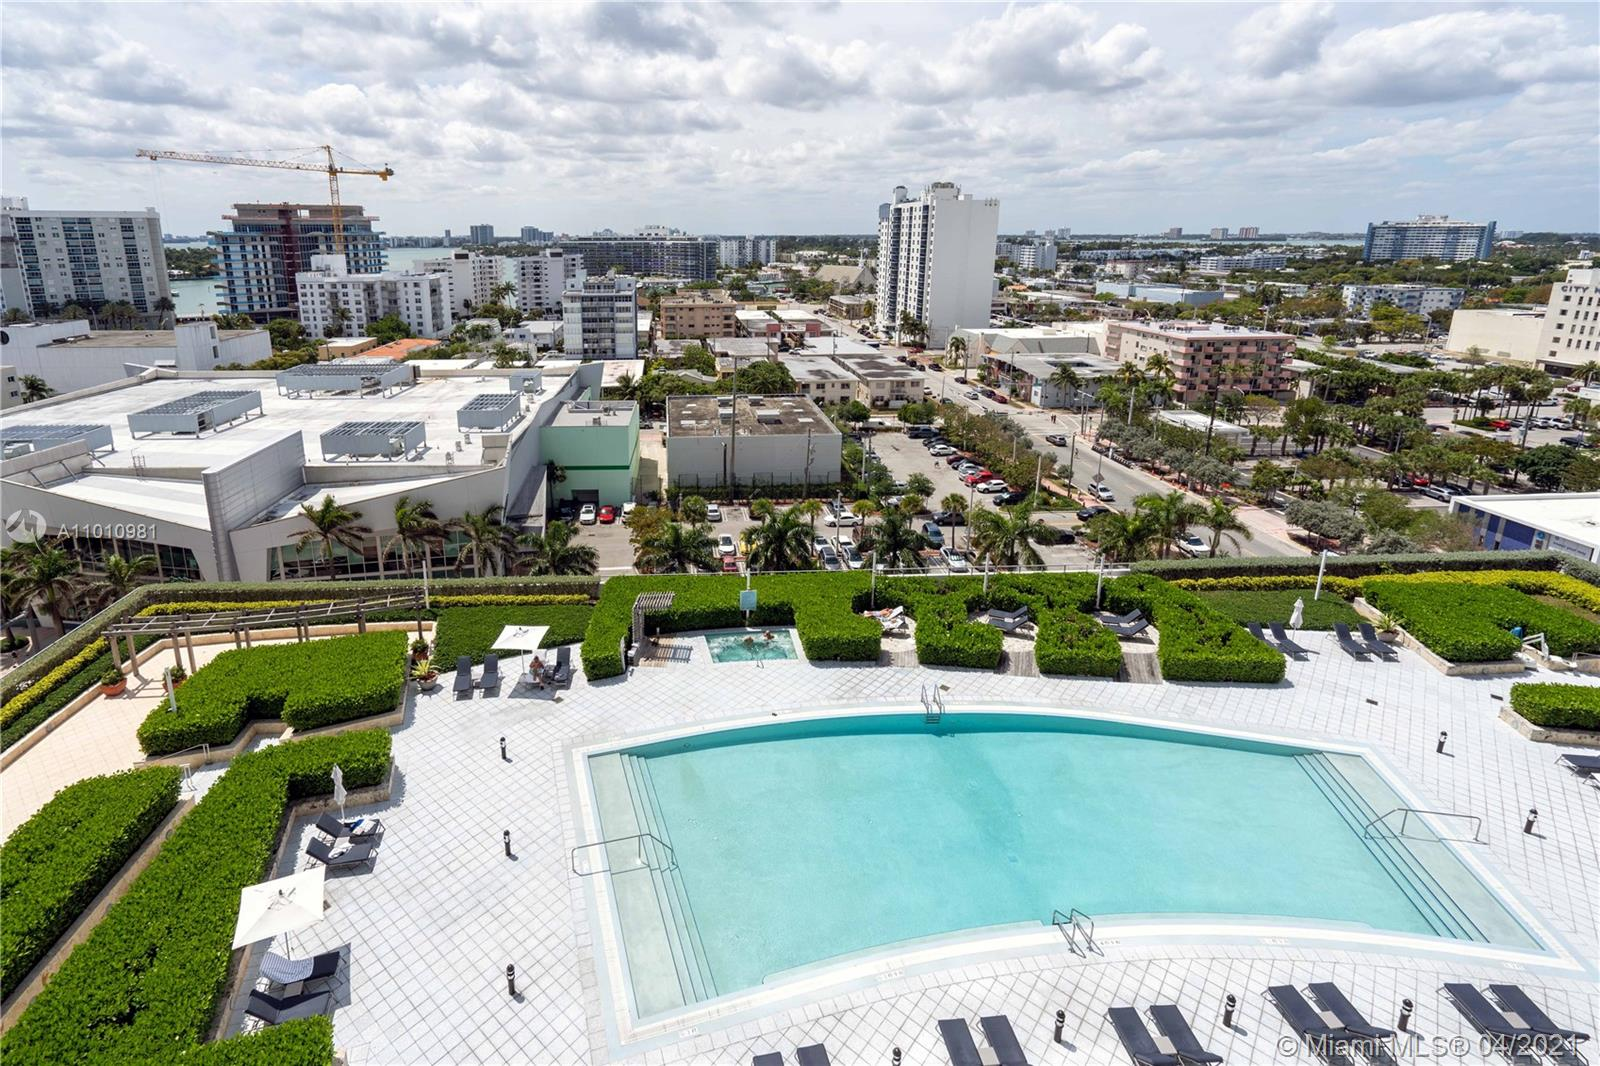 Best priced unit with this floor plan. Owner motivated to sell. Furnished turn-key unit with motorized shades in bedrooms in prestigious North Tower of Carillon Miami Wellness Resort, a premier oceanfront resort. Stunning sunset, Intra-coastal, city views from all rooms. Enjoy South Florida's largest spa-70,000 sq ft fitness/spa center with European-inspired thermal experiences. Classes 7-days week from morning to early evening. Amenities also include salon, 4 pools, concierge, restaurant overlooking ocean, cafe, bar, 24hr security, valet, beach service, boardwalk. Quiet neighborhood with all conveniences. Great opportunity to live a lifestyle of luxury and wellness.